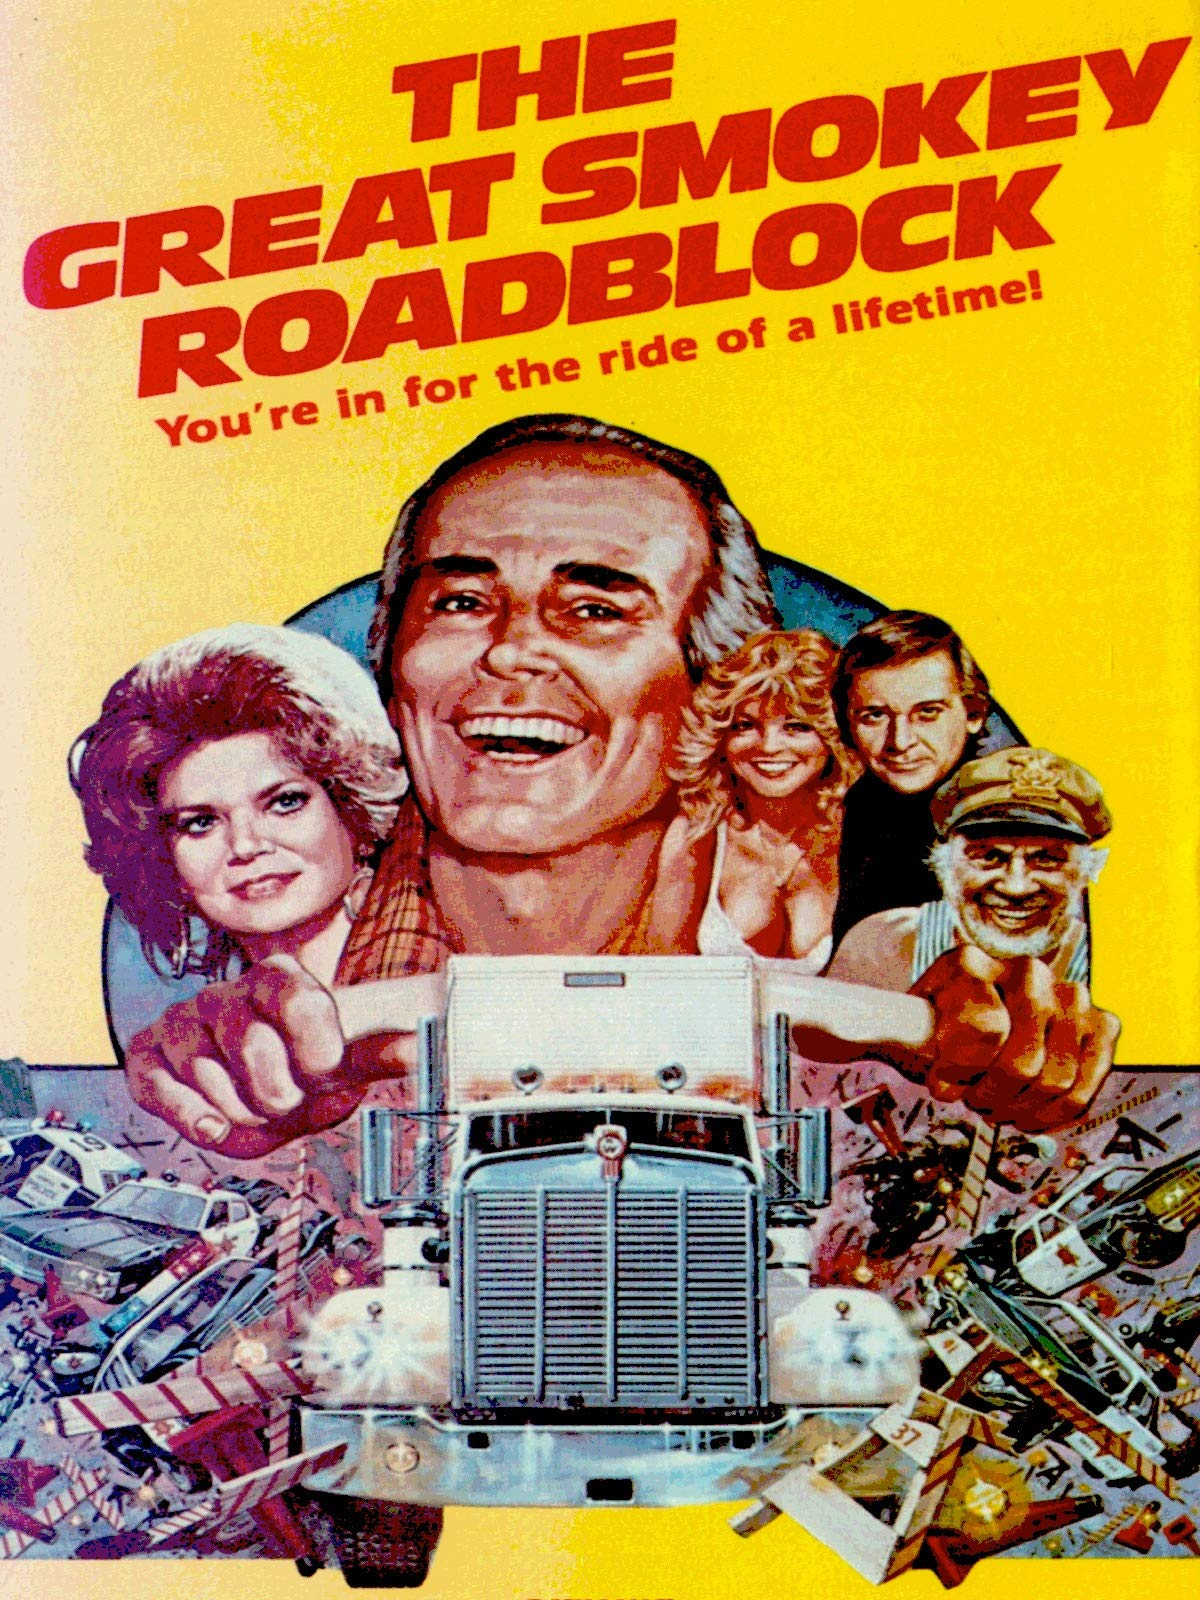 Watch The Great Smokey Roadblock | Prime Video